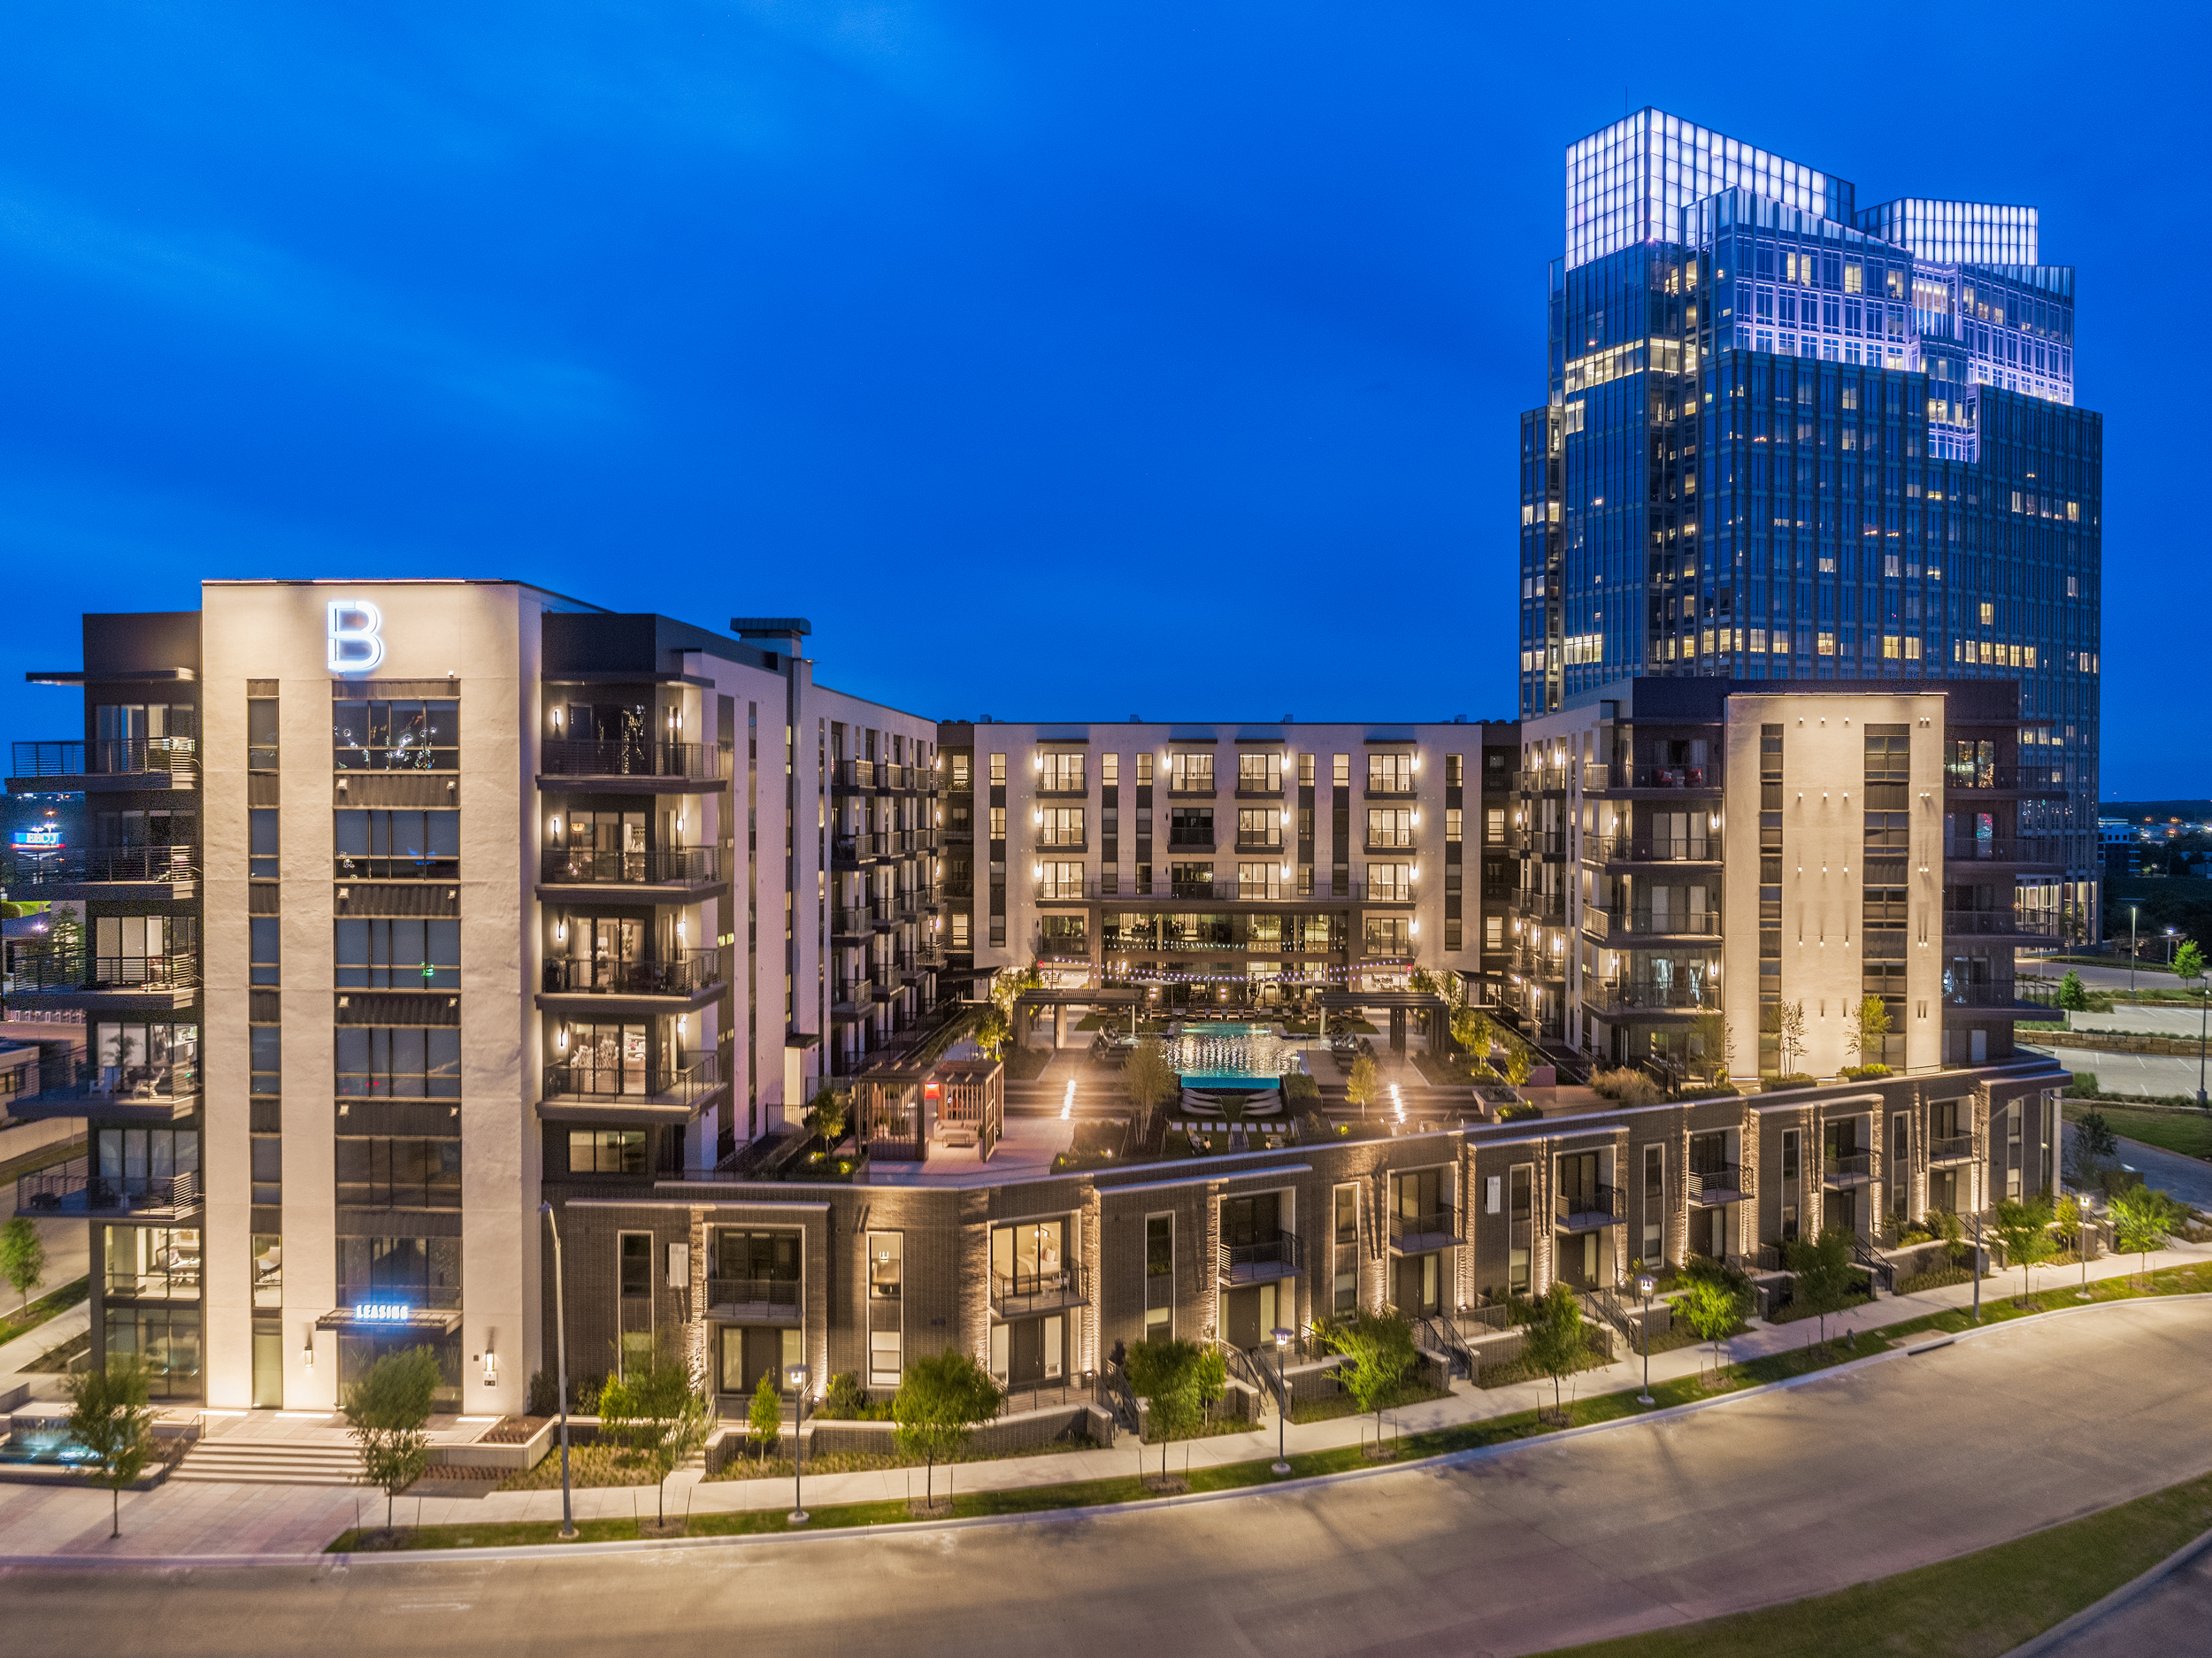 Aerial photography services for a building in Fort Worth, Texas.